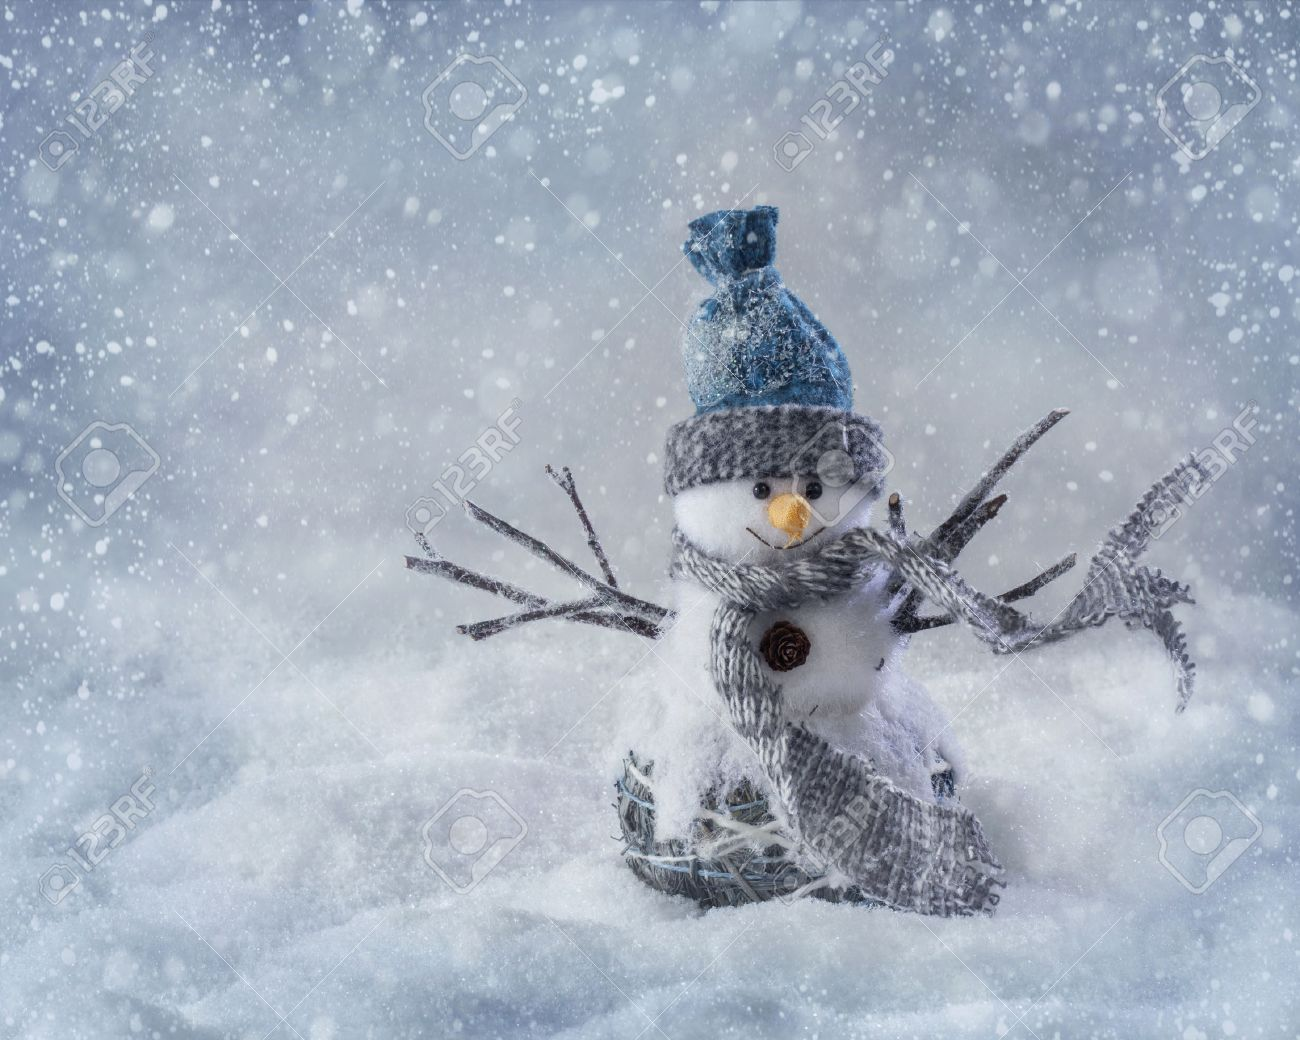 Smiling snowman standing in the snow - 23448383